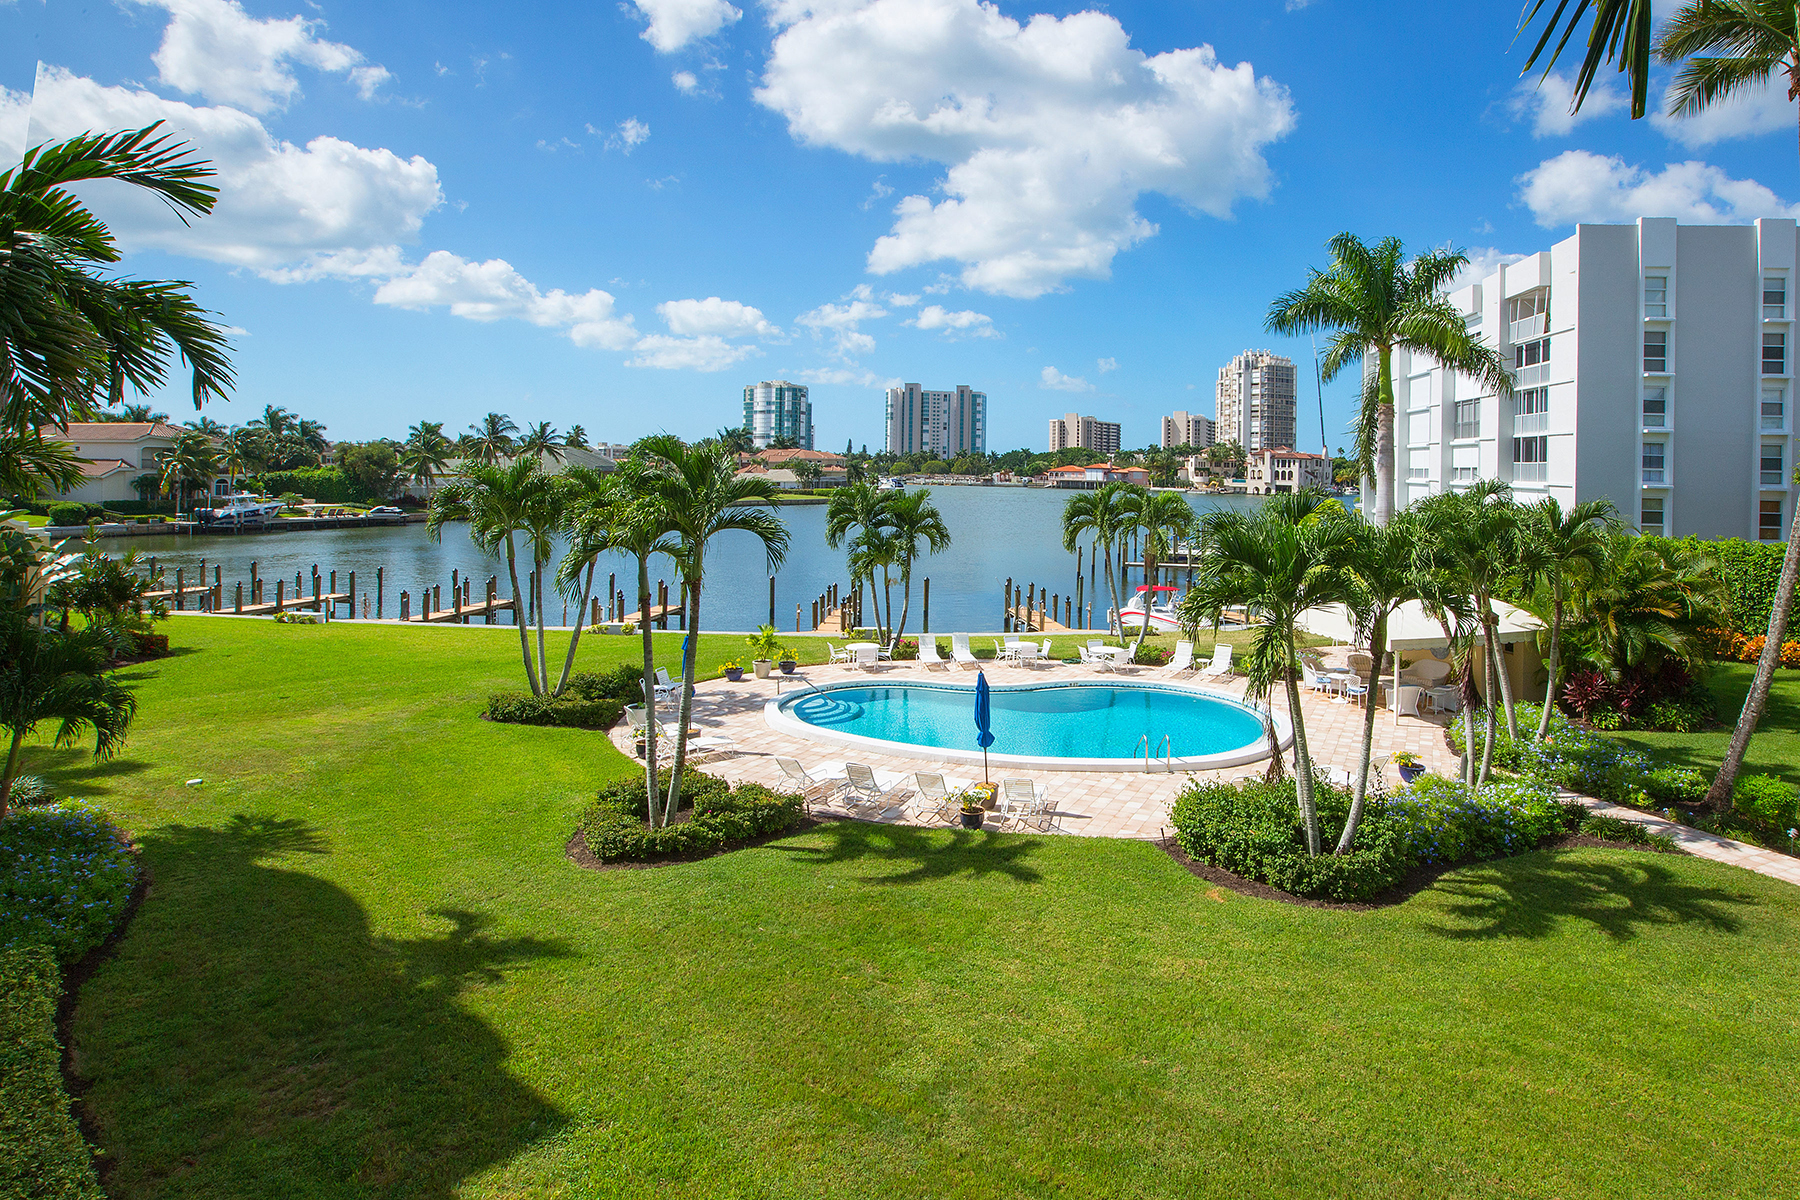 Condominio por un Venta en PARK SHORE - COLONY GARDENS 400 Park Shore Dr Unit 301 Naples, Florida, 34103 Estados Unidos